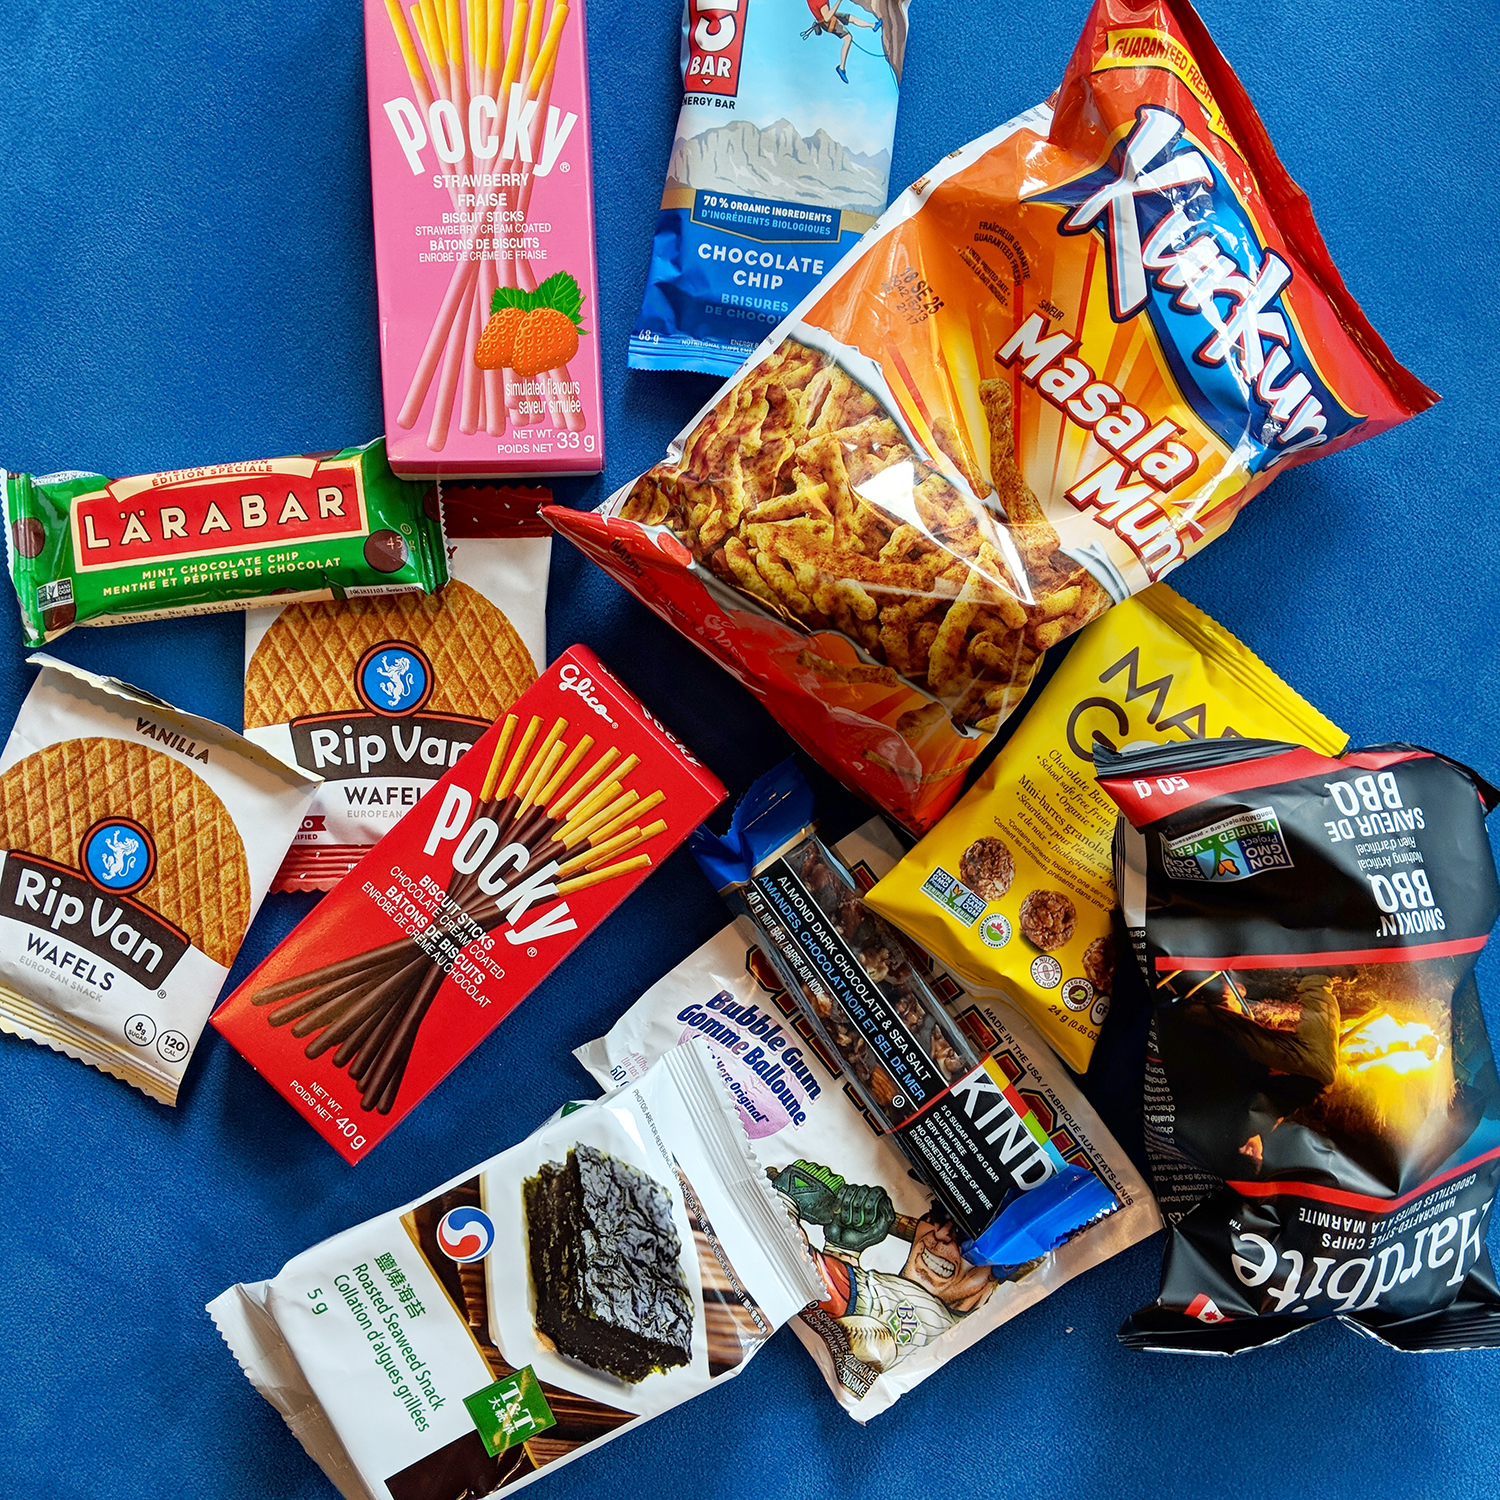 👋 Our snack haul this week